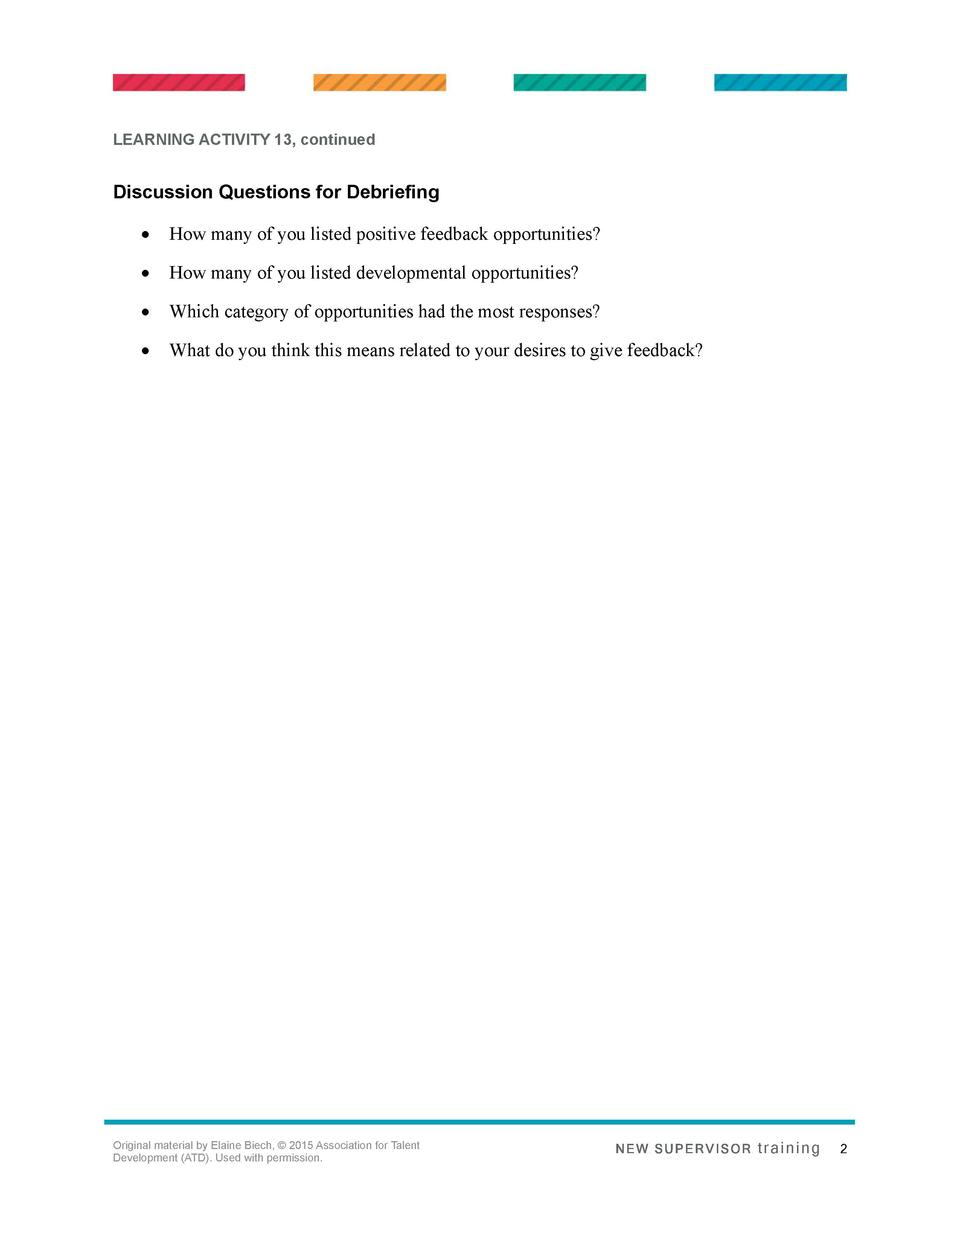 LEARNING ACTIVITY 13, continued  Discussion Questions for Debriefing      How many of you listed positive feedback opportu...